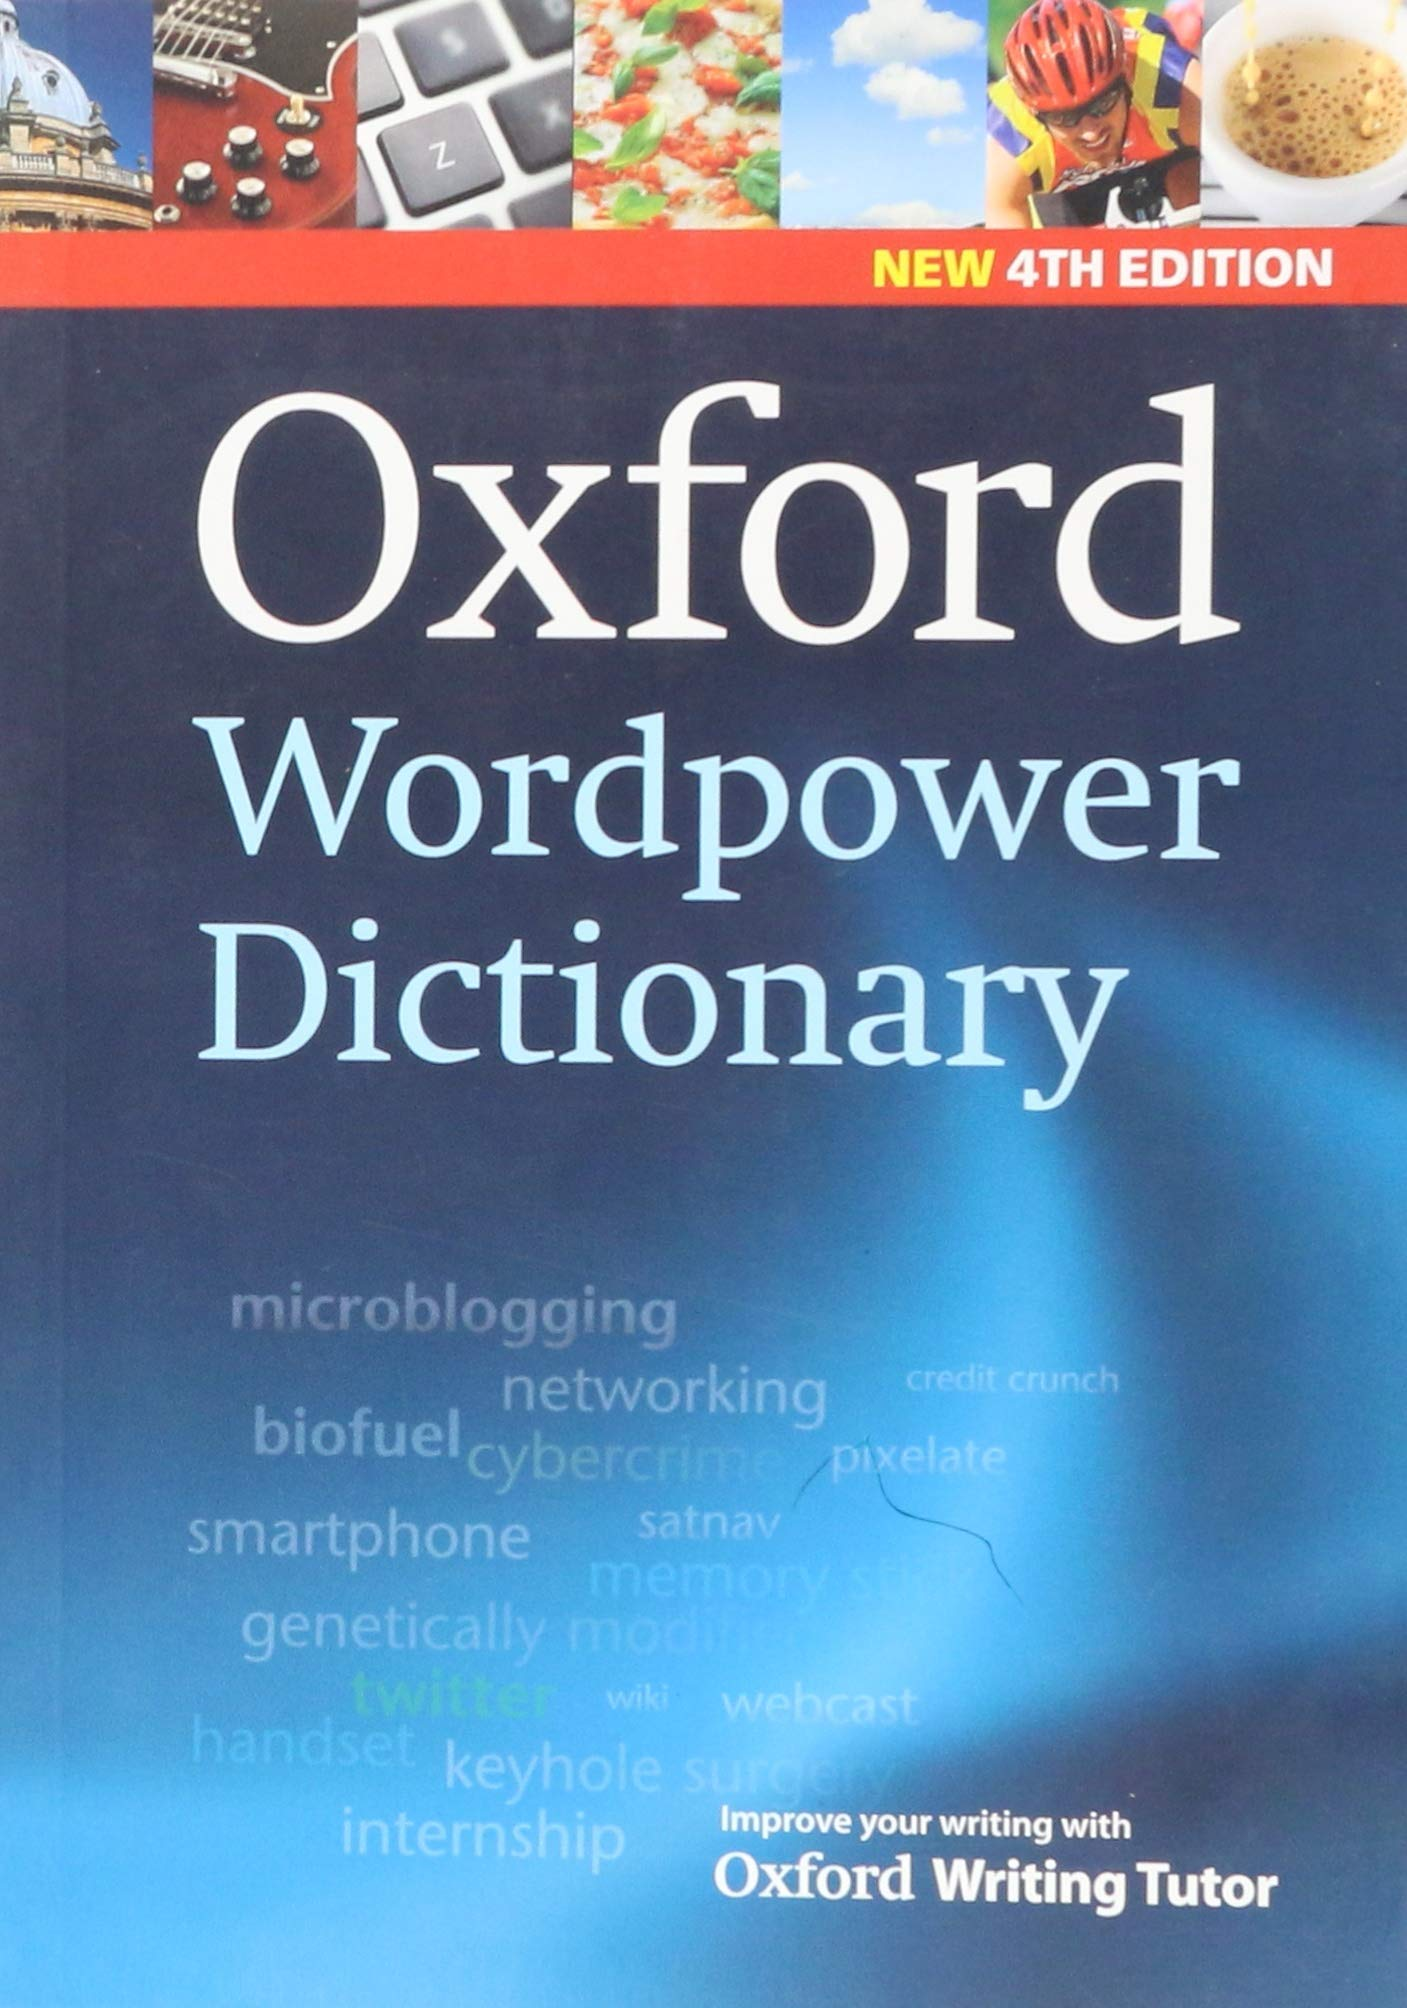 oxford wordpower dictionary  Oxford Wordpower Dictionary, 4th Edition: Amazon.: Sally ...